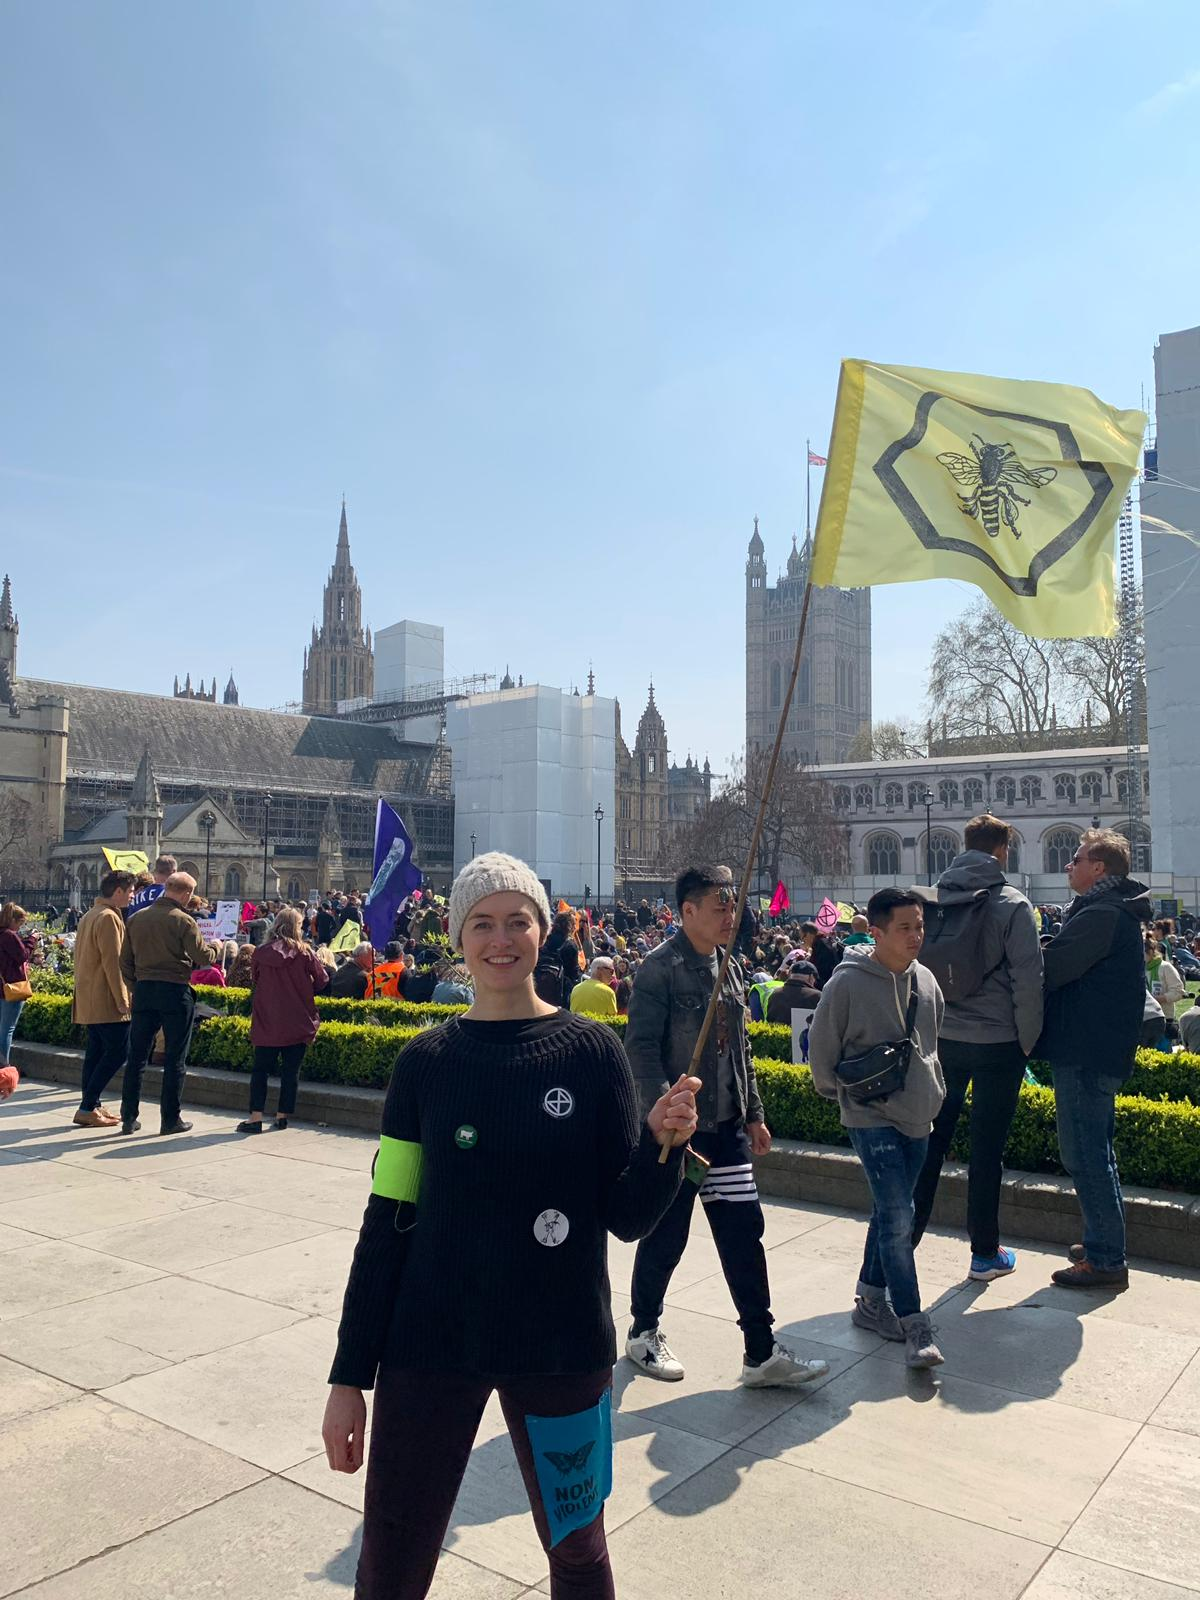 Andrea Cox, a careers consultant from London, holds a bumblebee flag outside the Houses of Parliament.